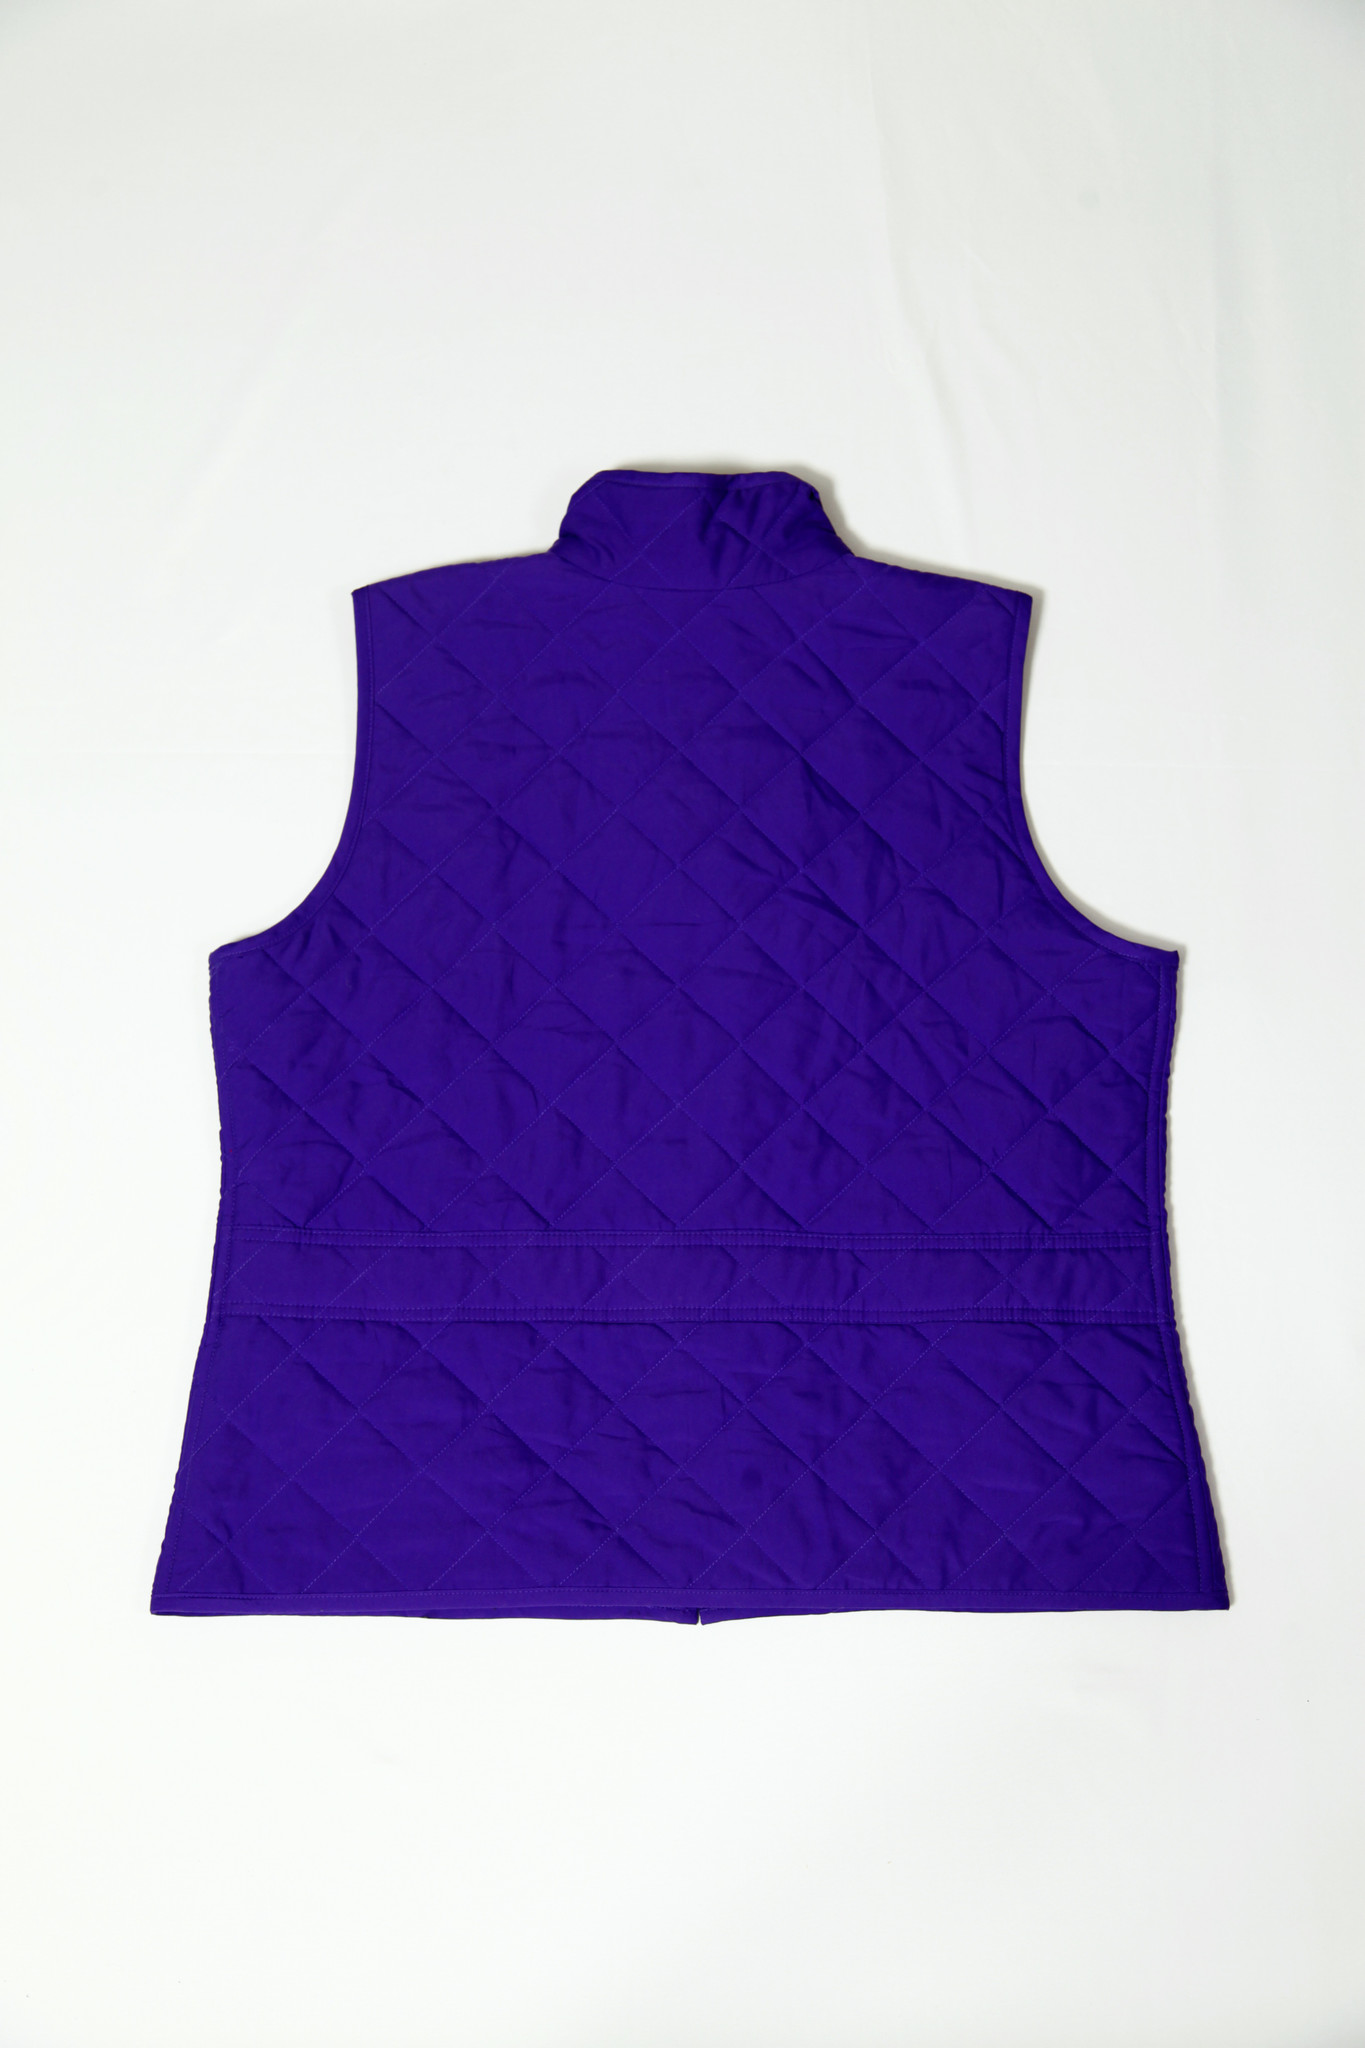 Quilted Chaps bodywarmer